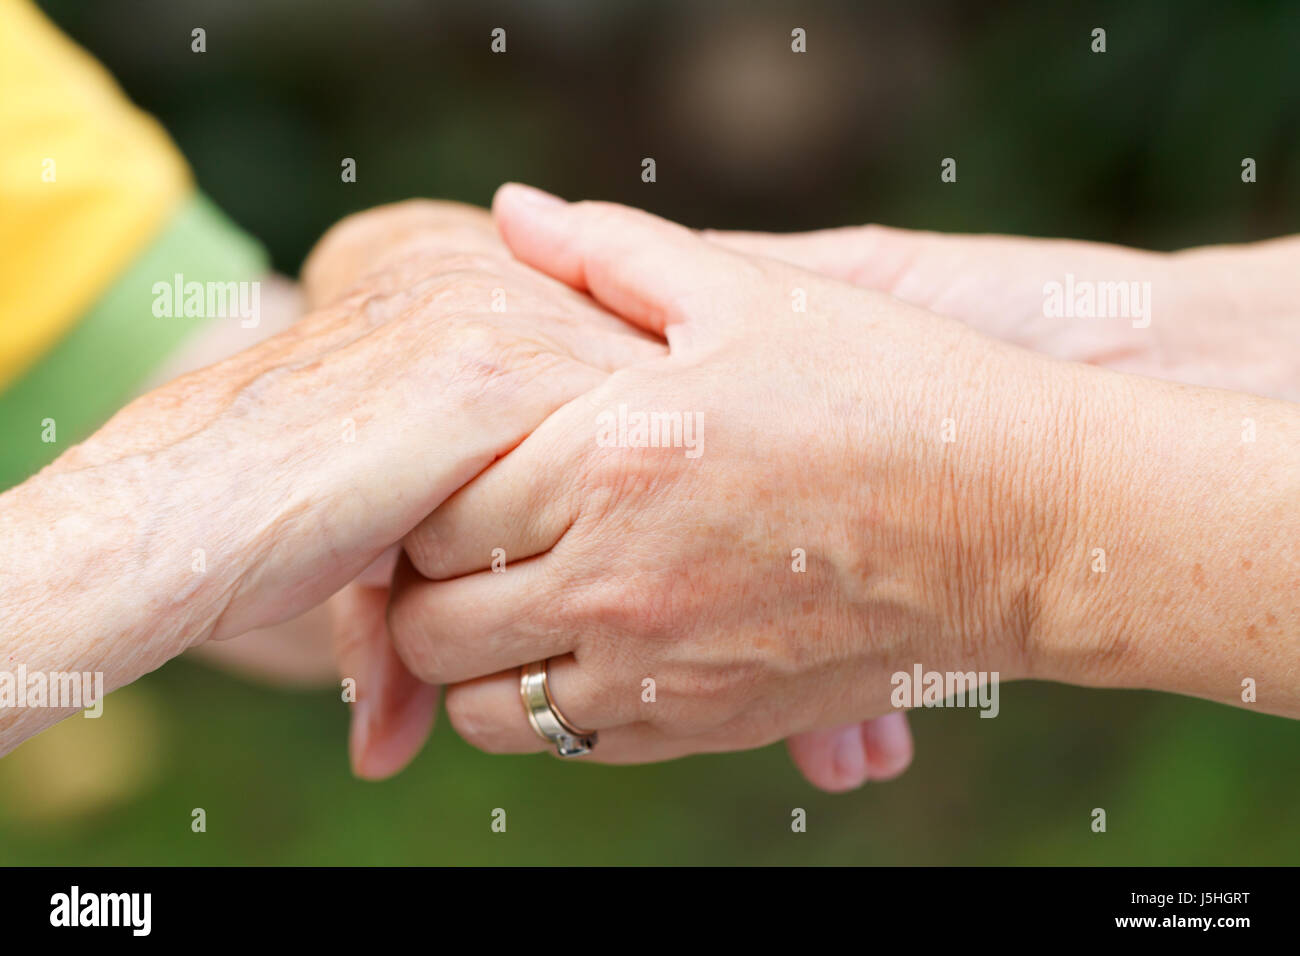 Caregiver touching and holds an elderly wrinkled hand - Stock Image